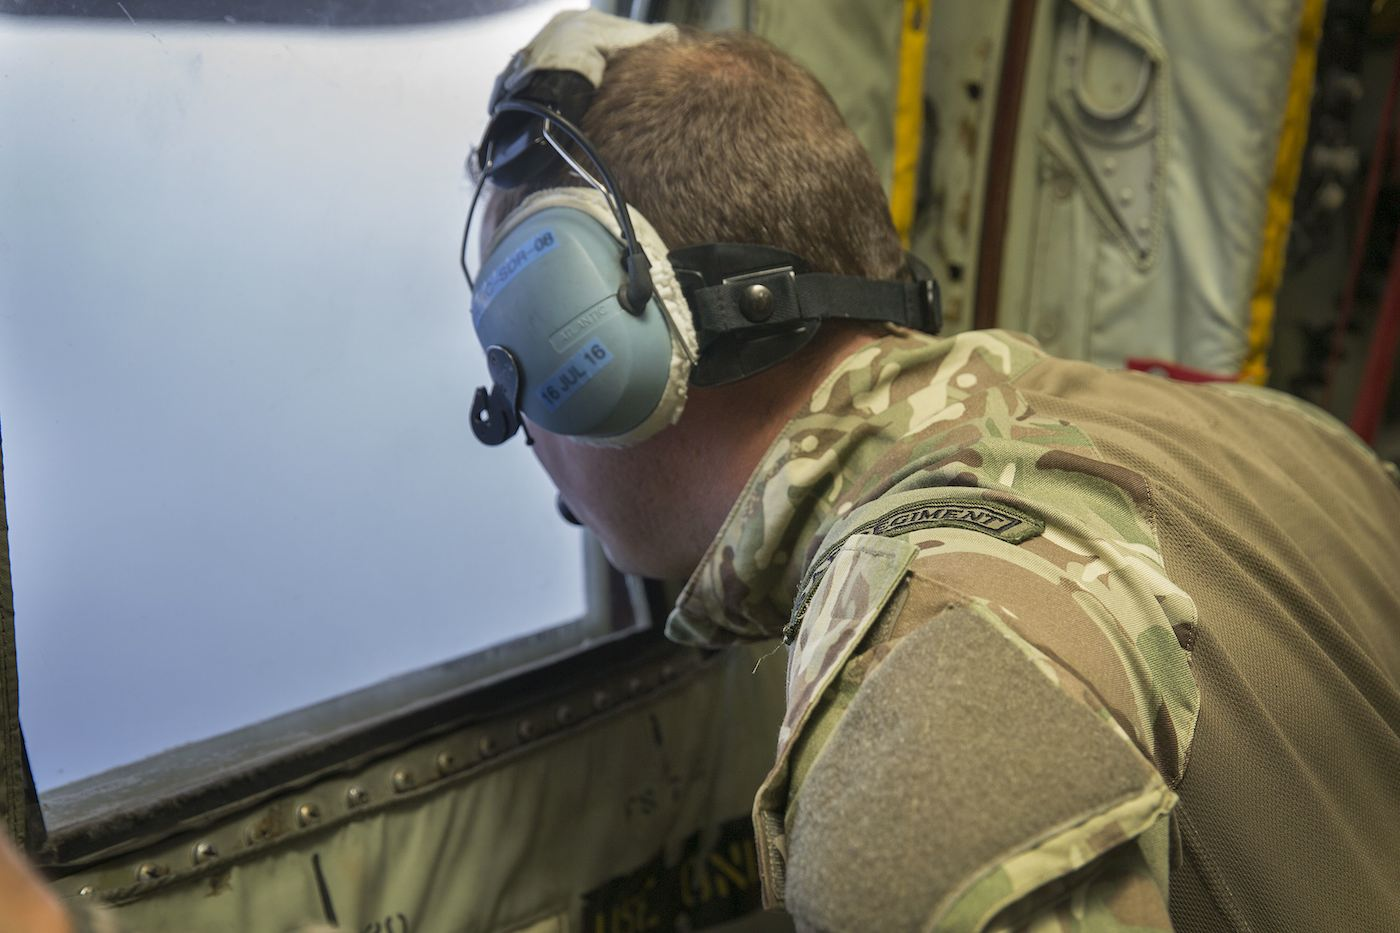 SEARCH. A handout picture shows a British Navy officer looking out the window of an Royal Air Force C-130 Hercules aircraft from RAF Akrotiri, Cyprus, assisting in the search and rescue operations for missing EgyptAir flight MS804 at sea in the Mediterranean off the Egyptian coast on 19 May 2016. Photo by Helen Rimmer / British Ministry of Defense / Crown Copyright / EPA